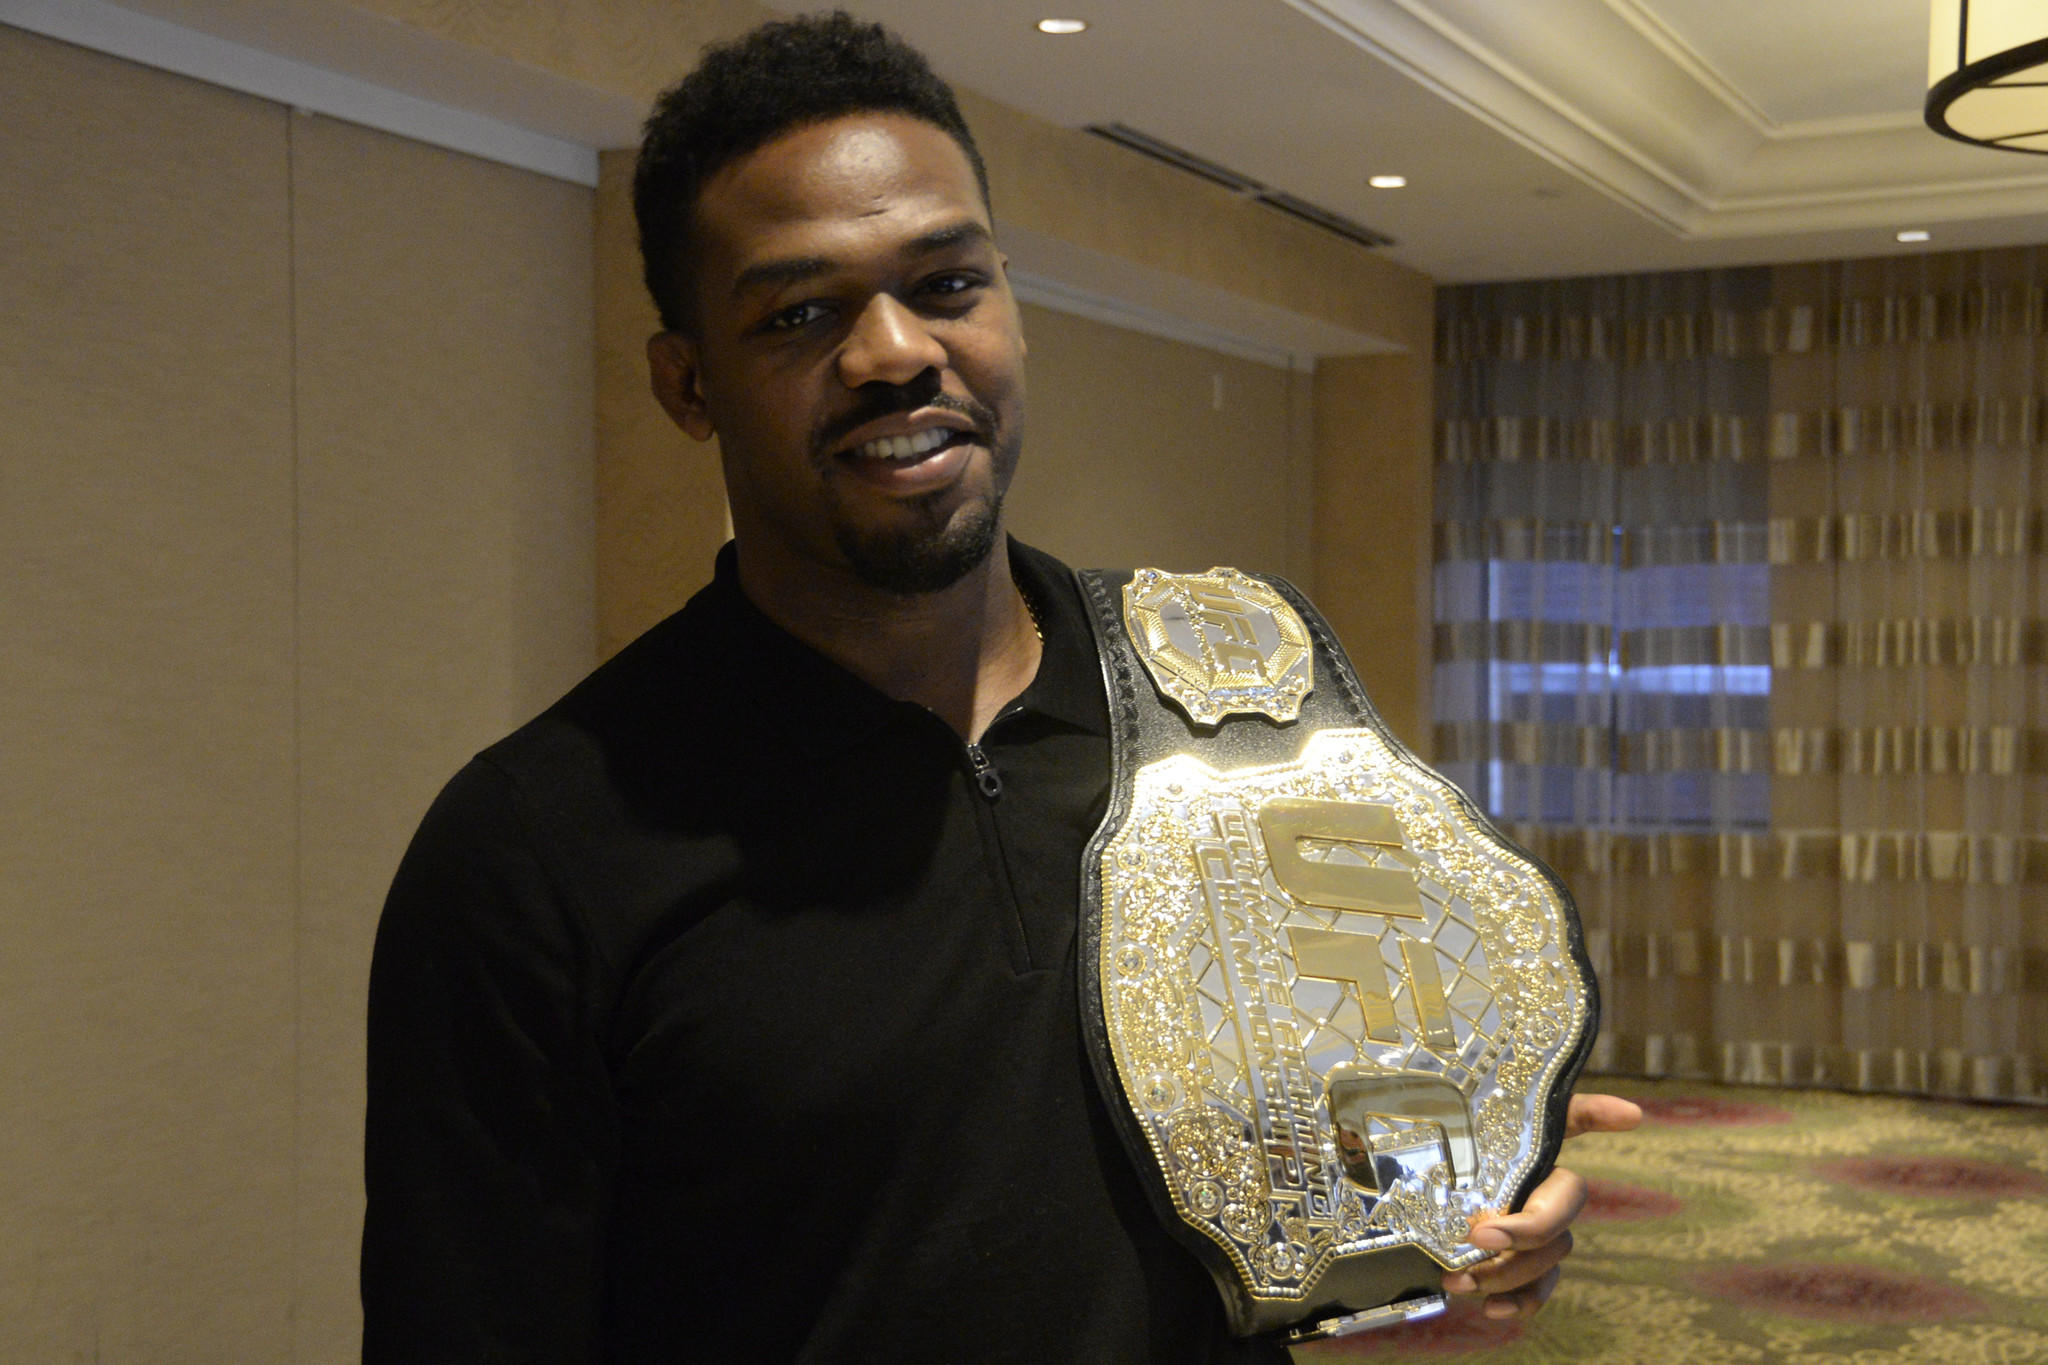 Jon Jones stands with his UFC belt at Monaco Hotel where he was speaking with reporters about his upcoming match in Baltimore.